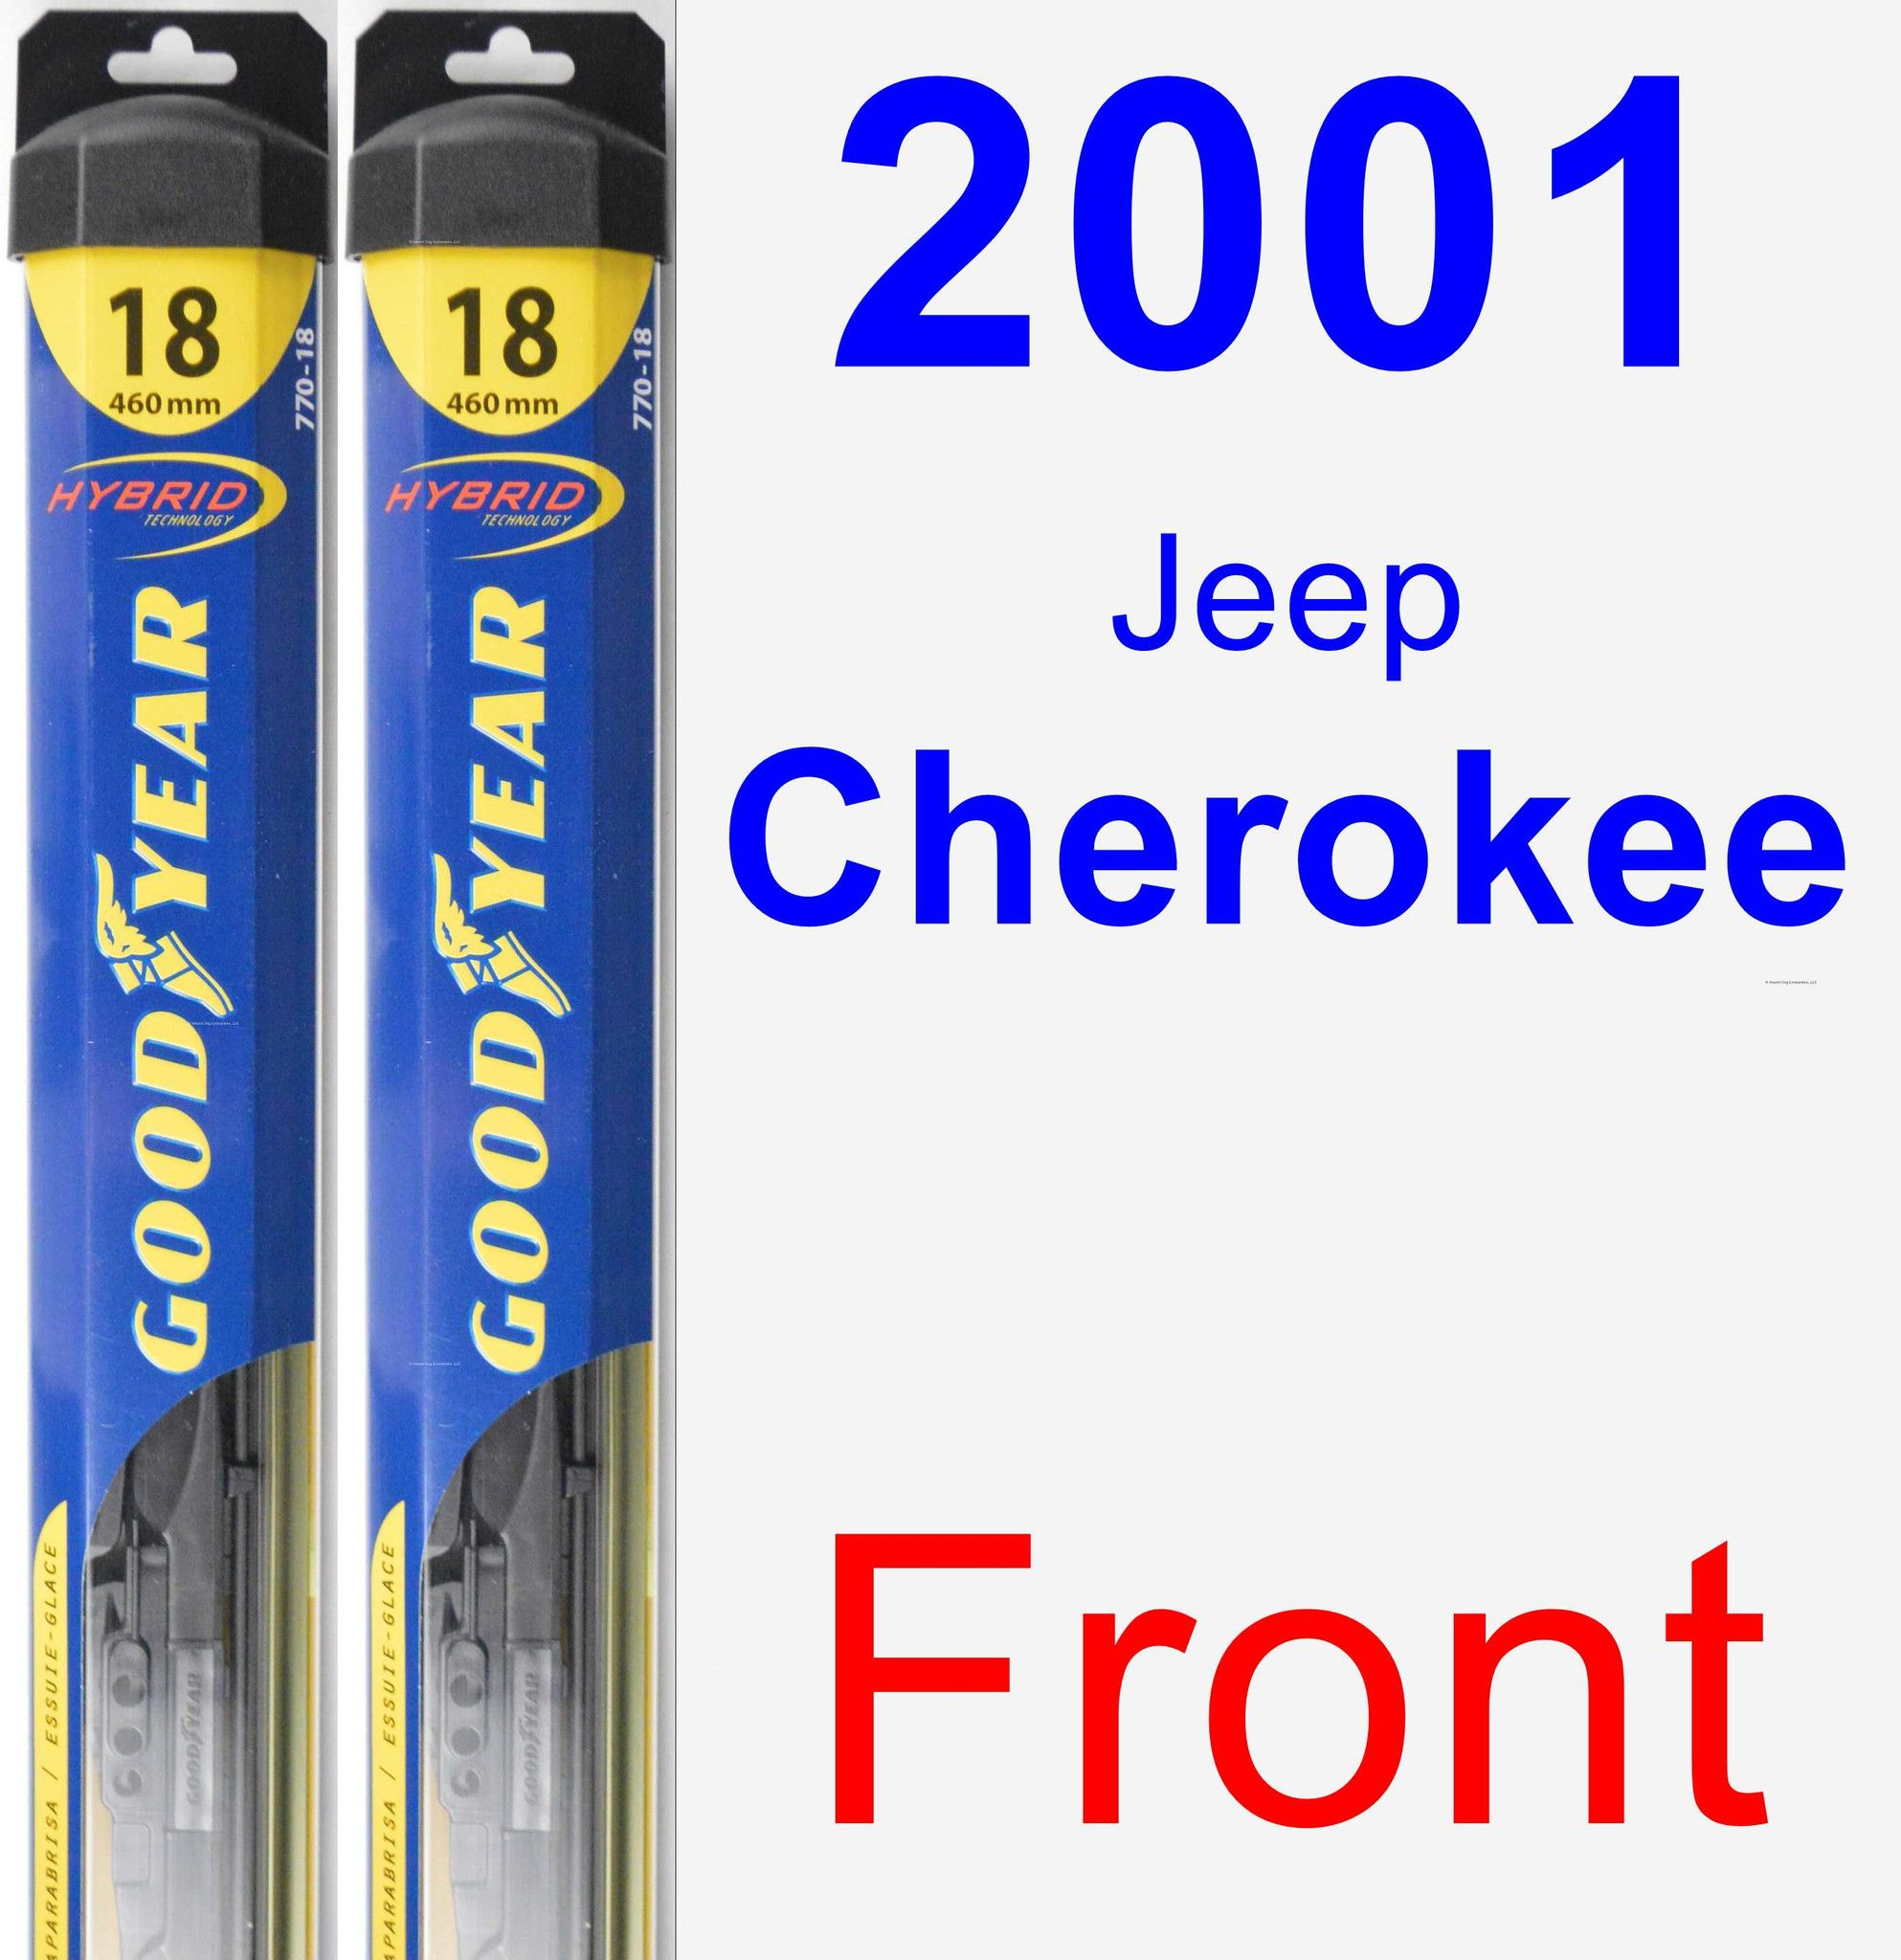 Front Wiper Blade Pack for 2001 Jeep Cherokee - Hybrid